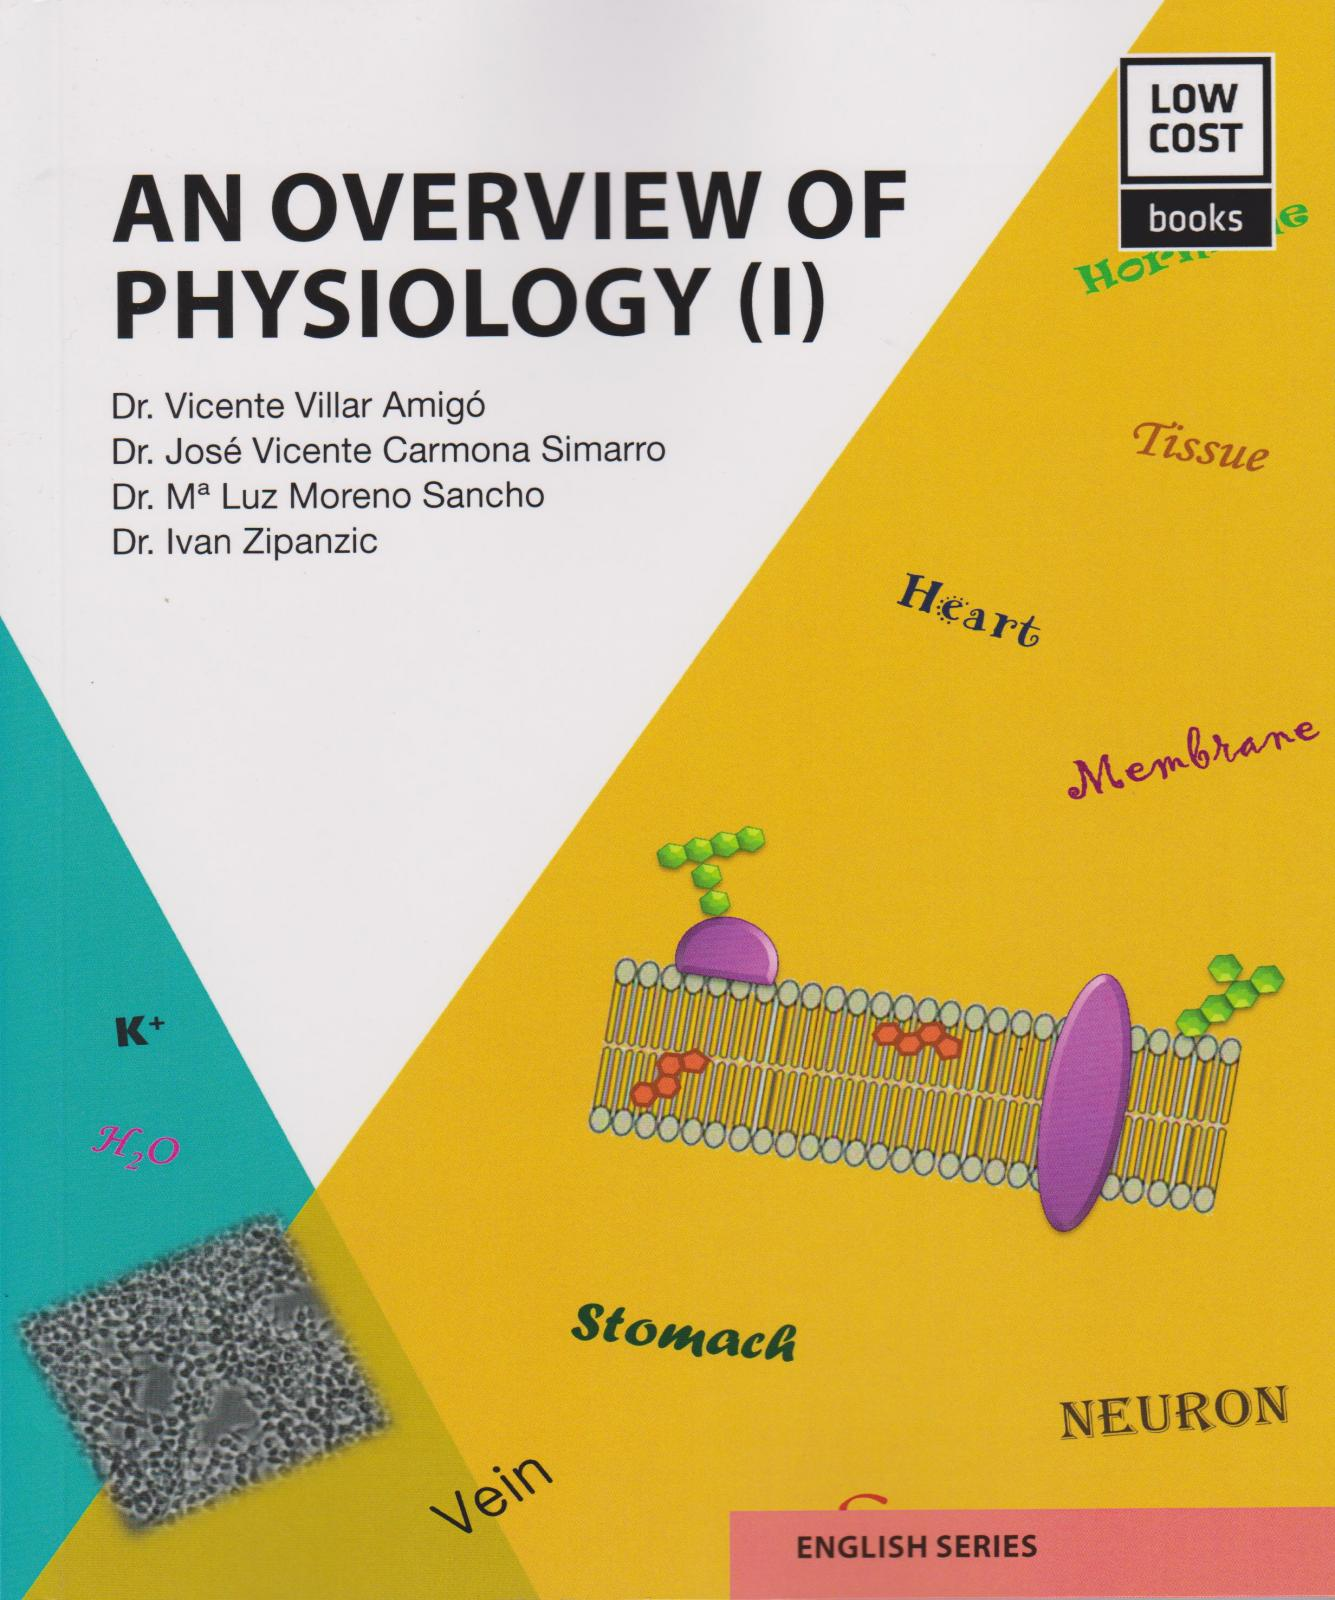 AN OVERVIEW OF PHYSIOLOGY (I)